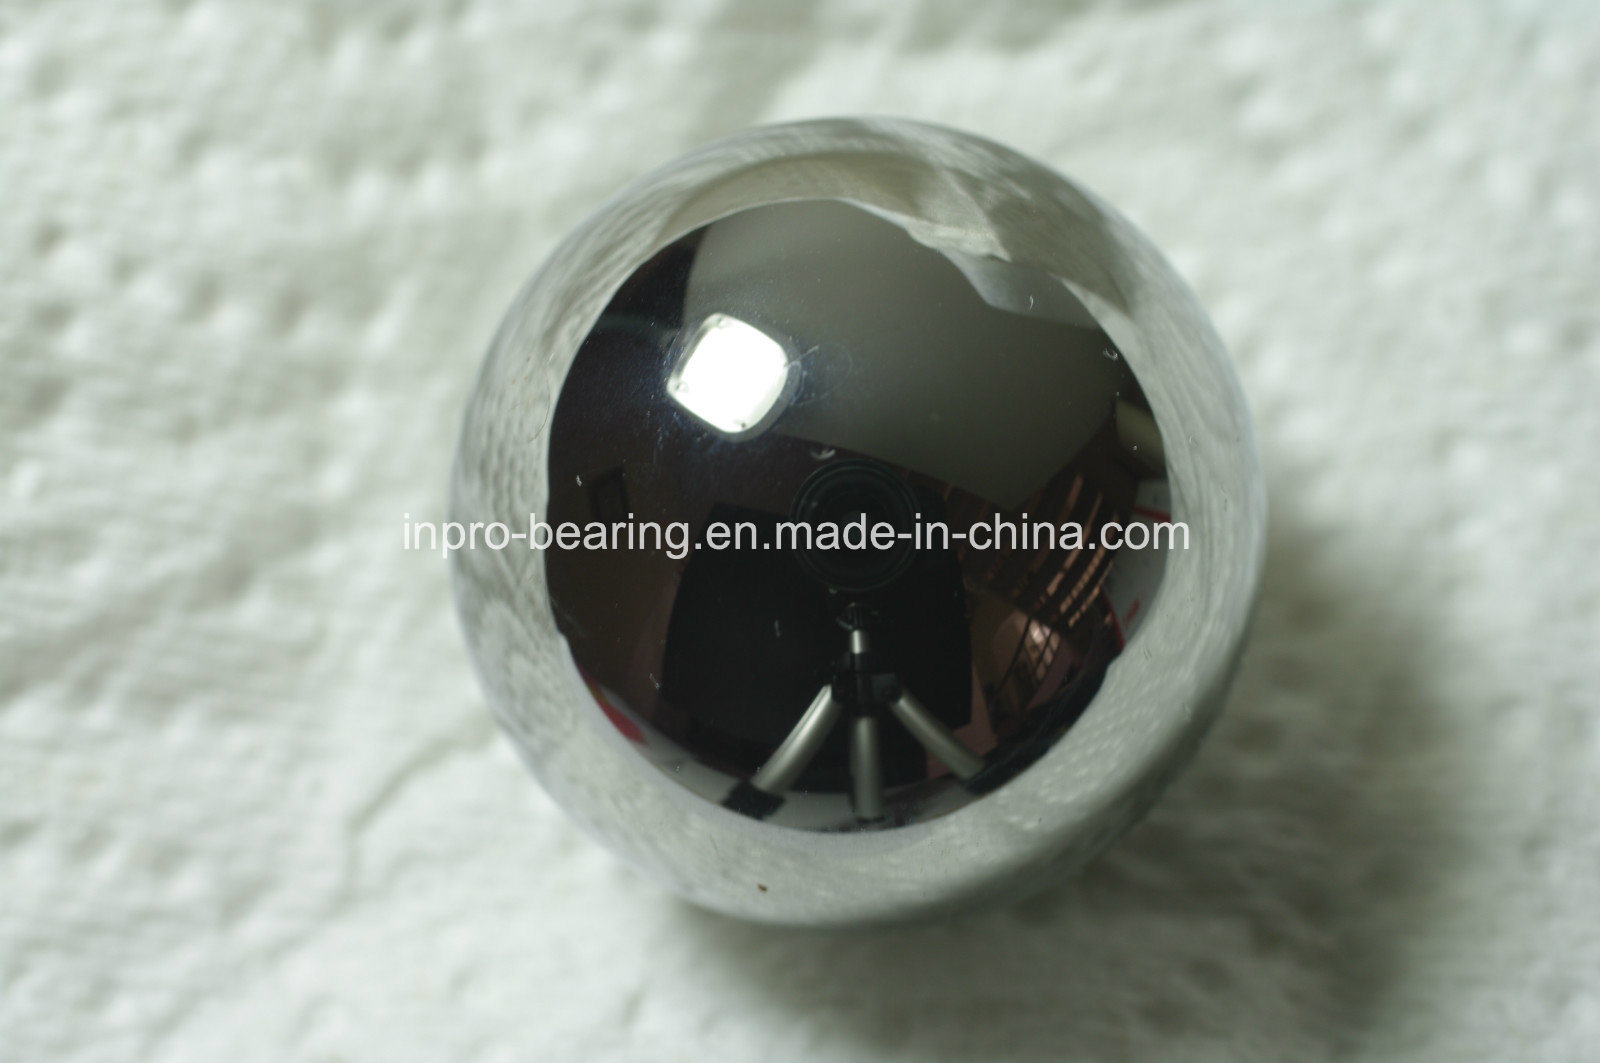 Stainless Steel Ball/Chrome Steel Ball 1.5-5mm